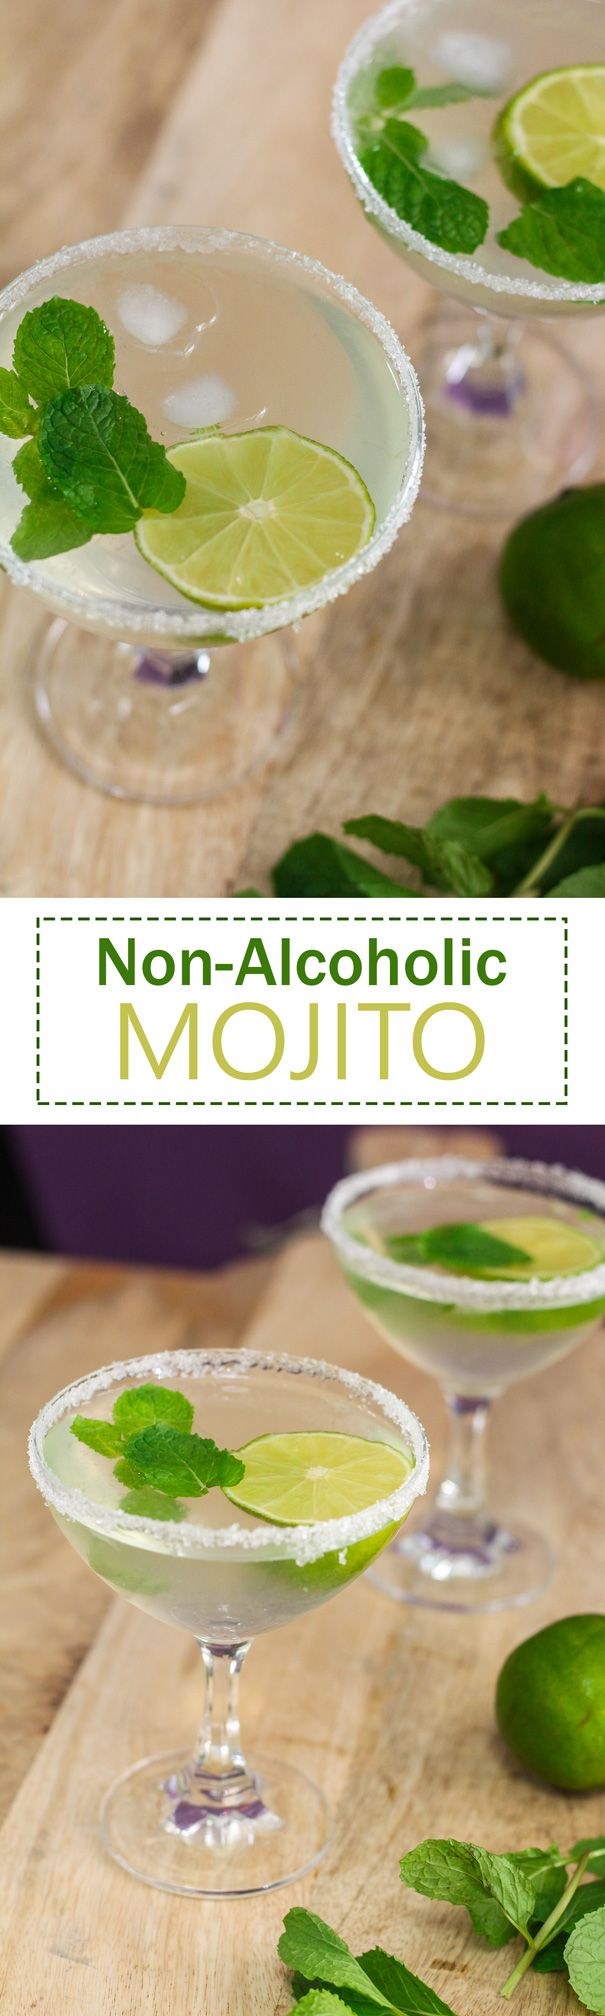 This Non-Alcoholic Mojito combines all of the flavors of the original without you getting drunk. ;)